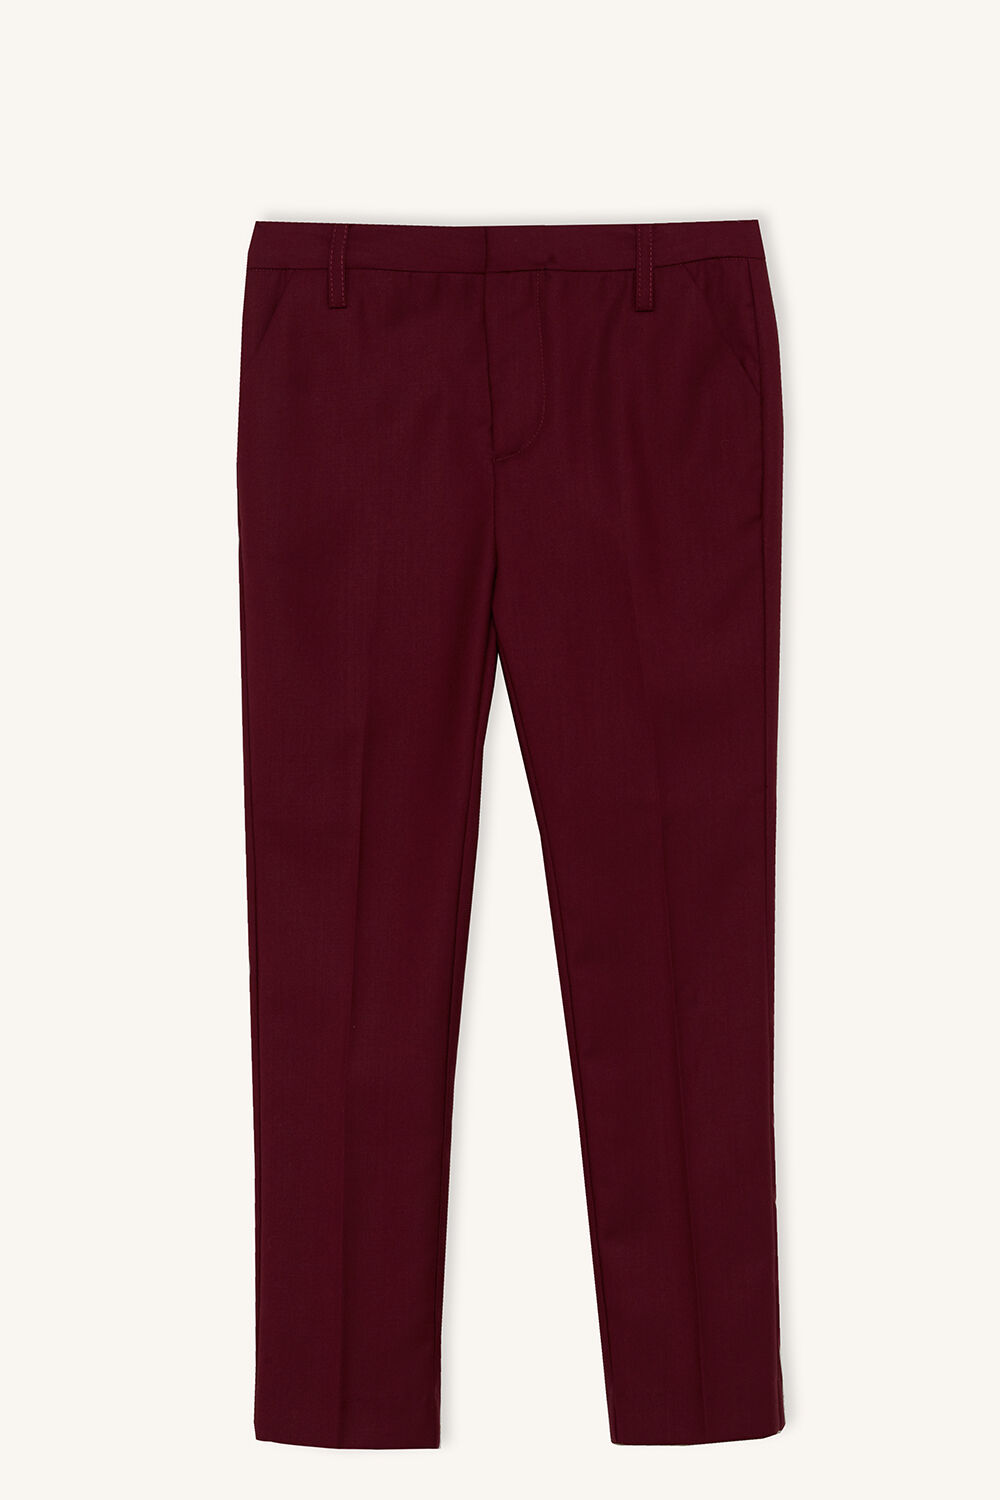 TAPERED SUIT PANT in colour BURGUNDY